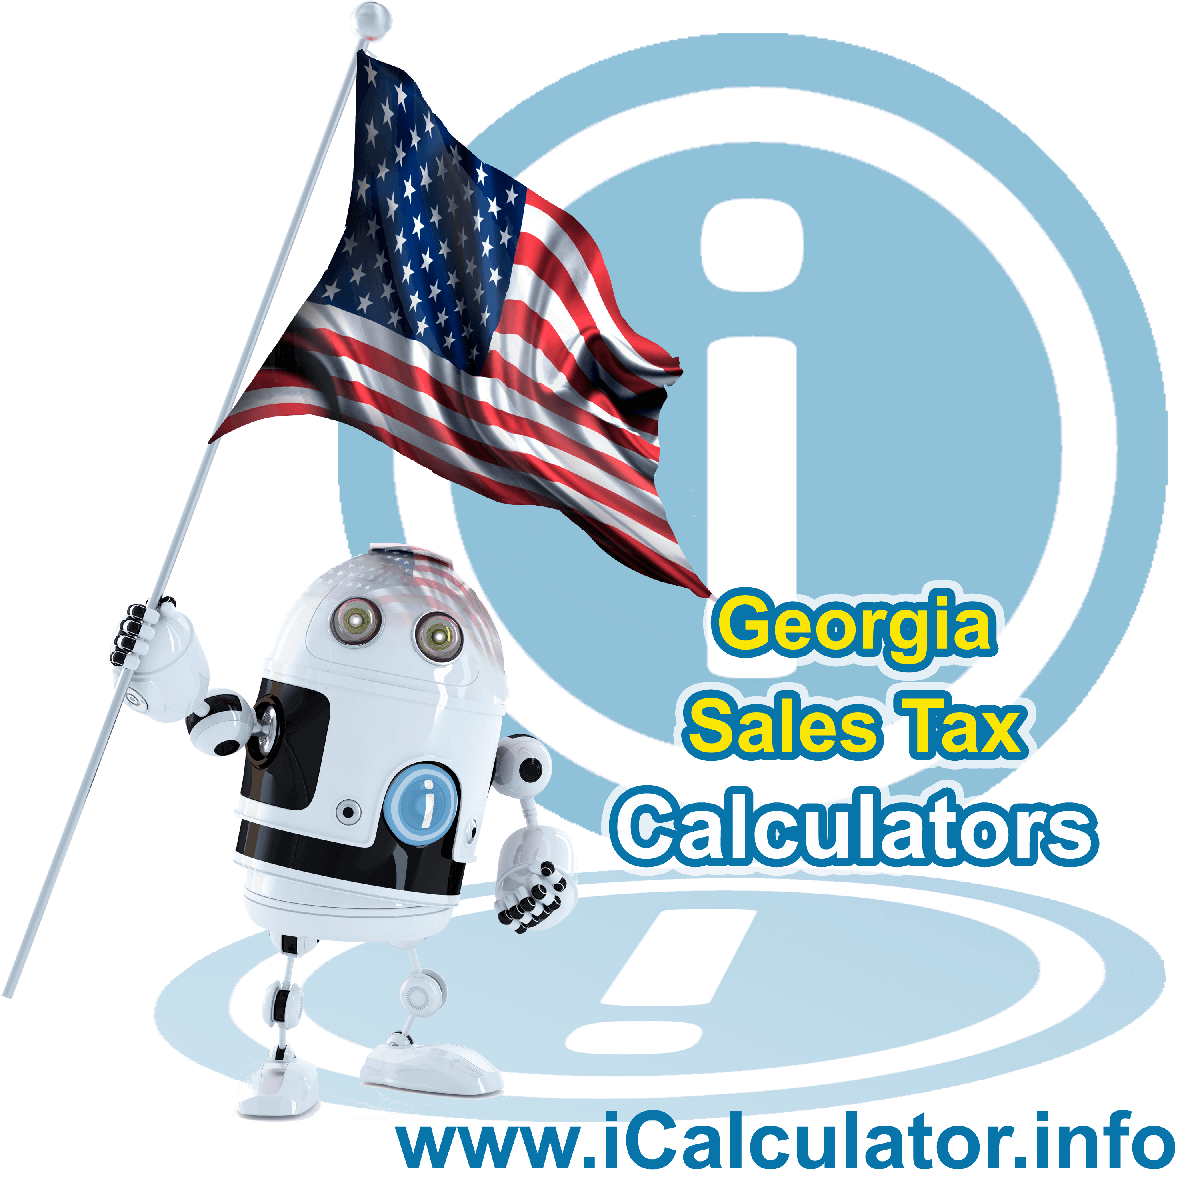 Telfair County Sales Rates: This image illustrates a calculator robot calculating Telfair County sales tax manually using the Telfair County Sales Tax Formula. You can use this information to calculate Telfair County Sales Tax manually or use the Telfair County Sales Tax Calculator to calculate sales tax online.